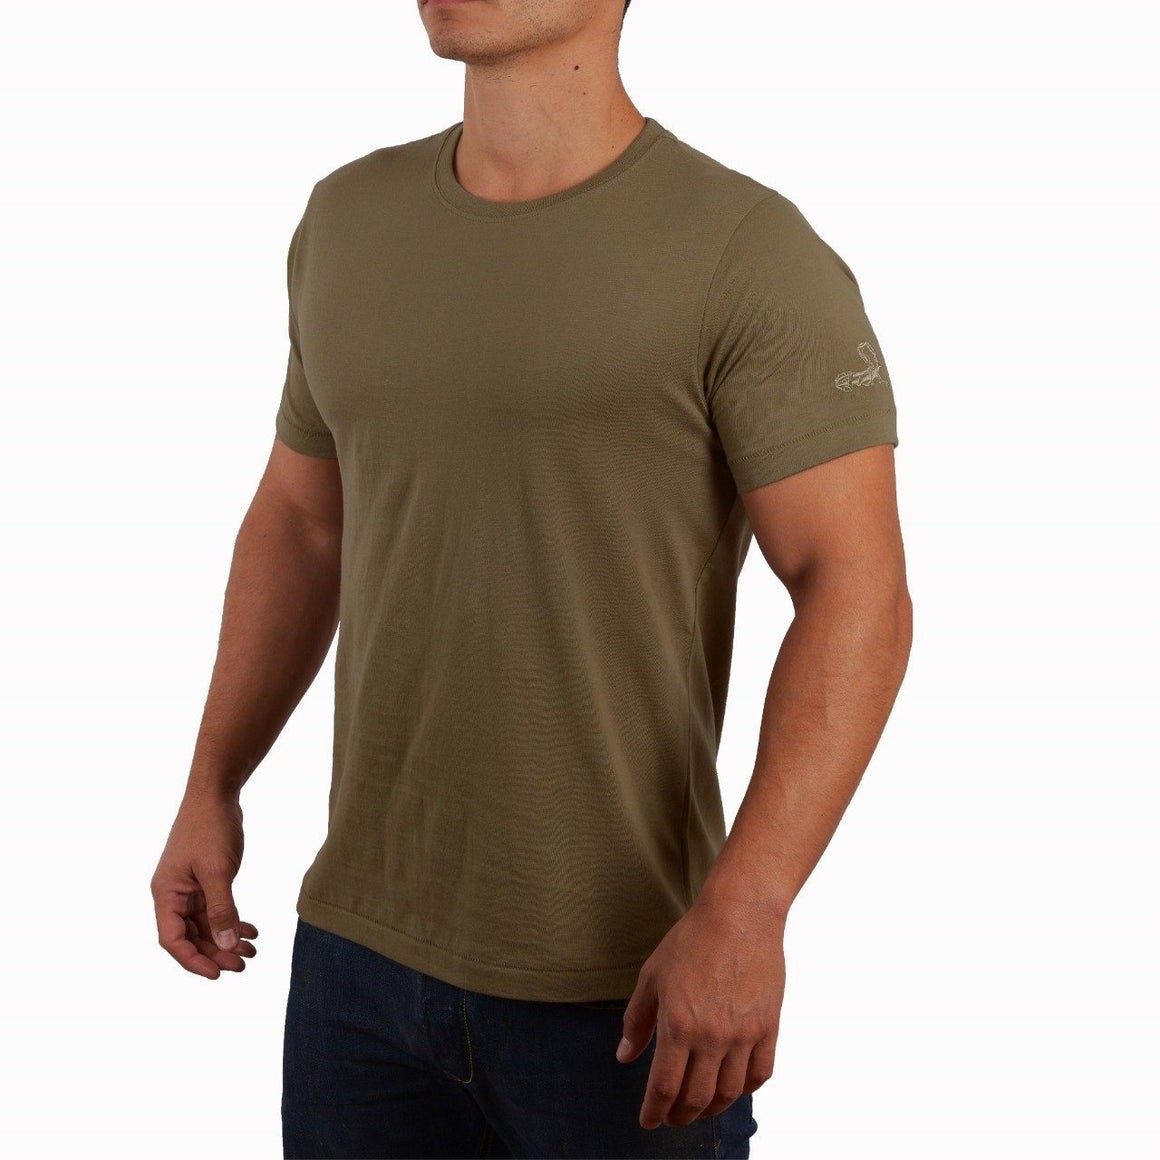 R&R Mens Crew, Medium, Coyote Tan - Agilite